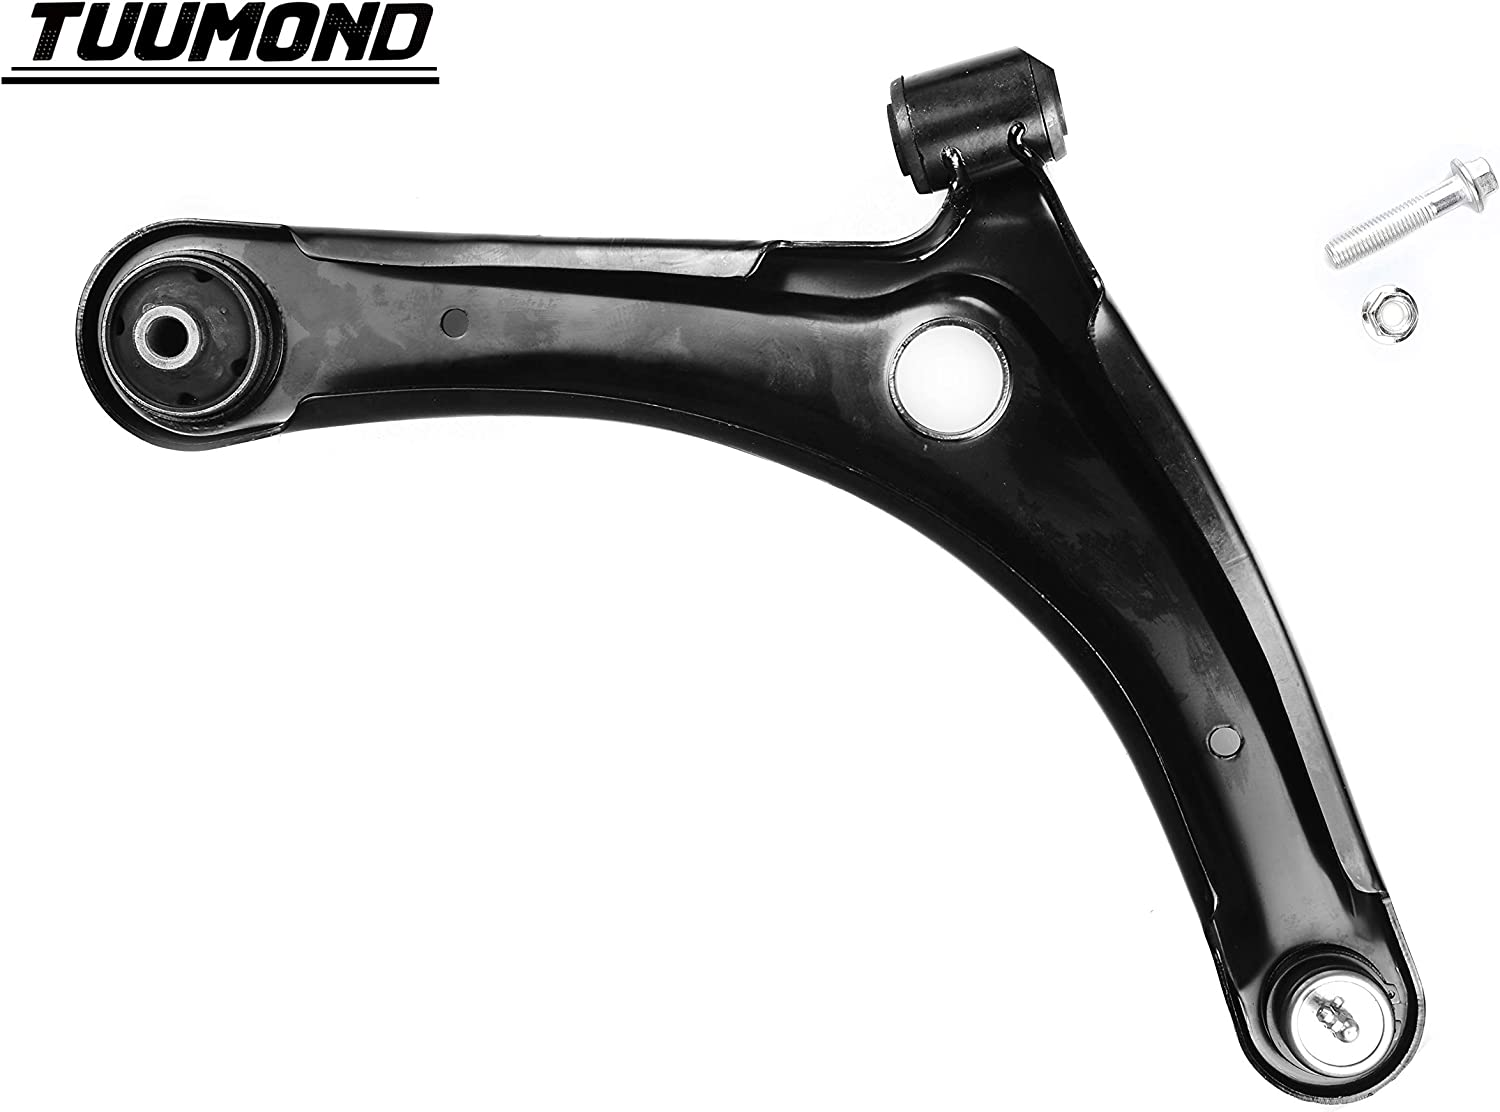 TUUMOND Front Lower Control Arms with Ball Joint Bushing for 2007-2012 Dodge Caliber 2007-2014 Jeep Compass 2007-2014 Jeep Patriot Front Suspension Both Driver and Passenger Side K620066 K620065